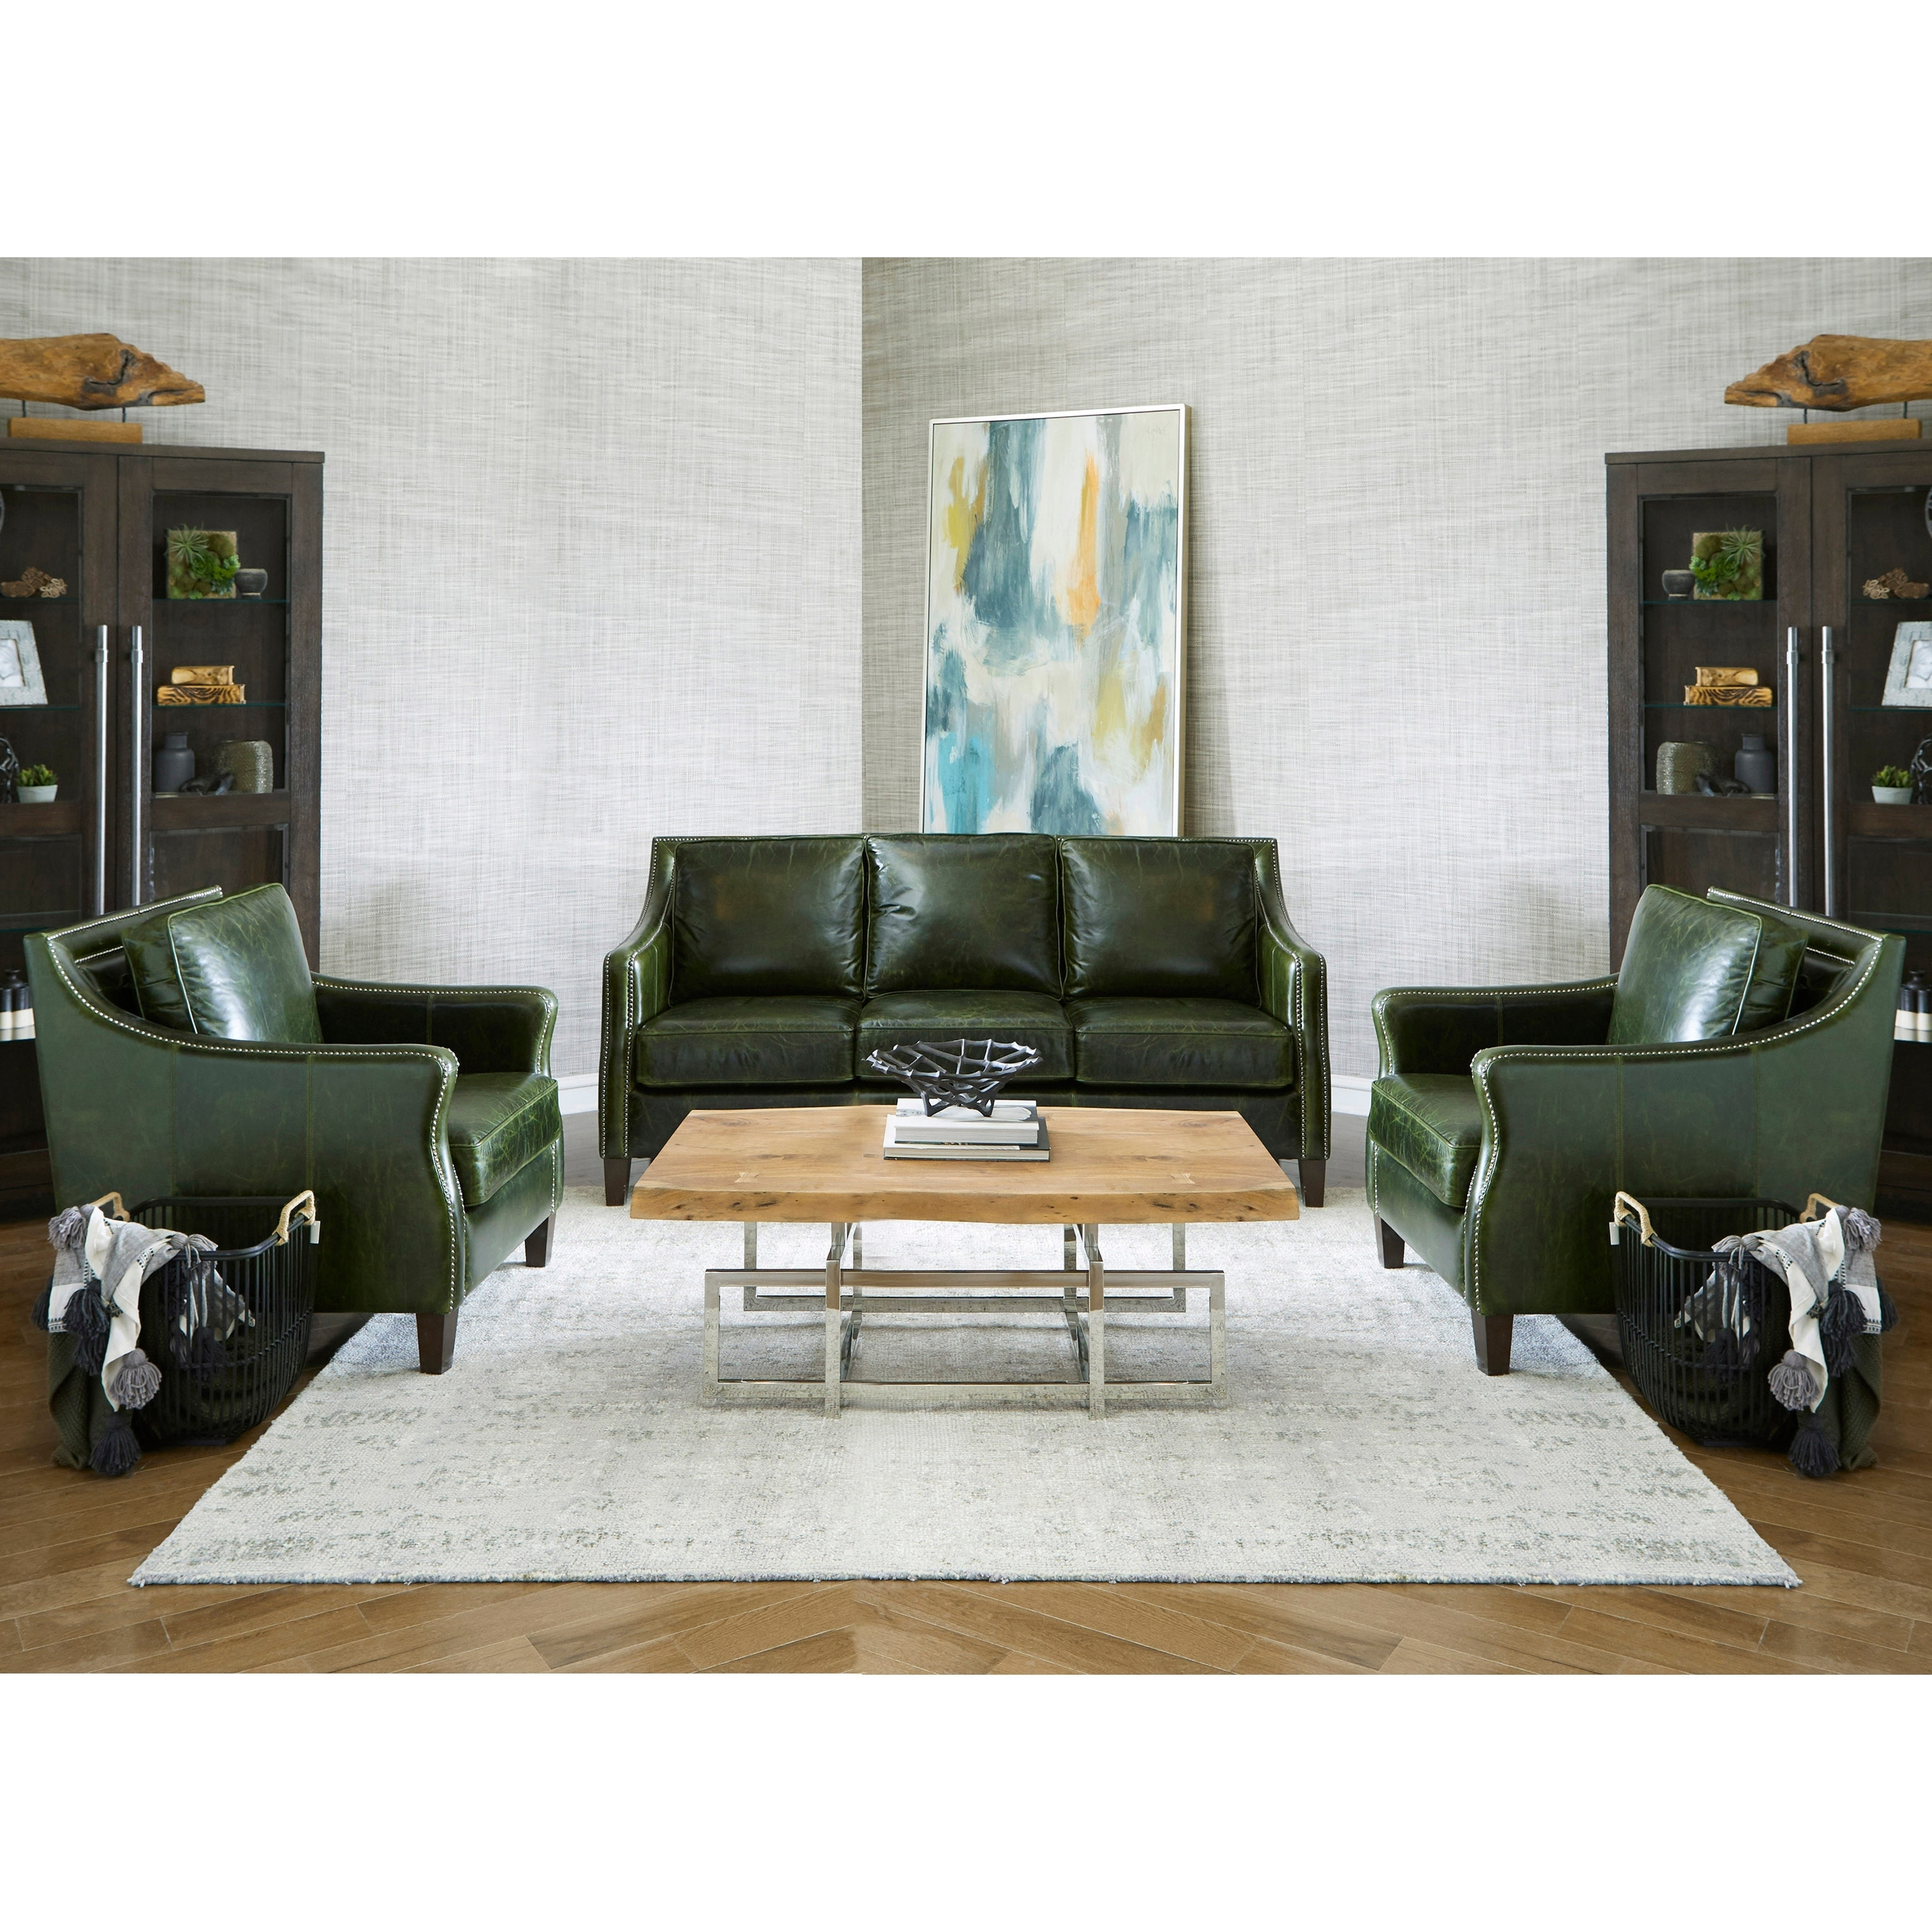 Top Grain Leather Sofa And Two Chairs